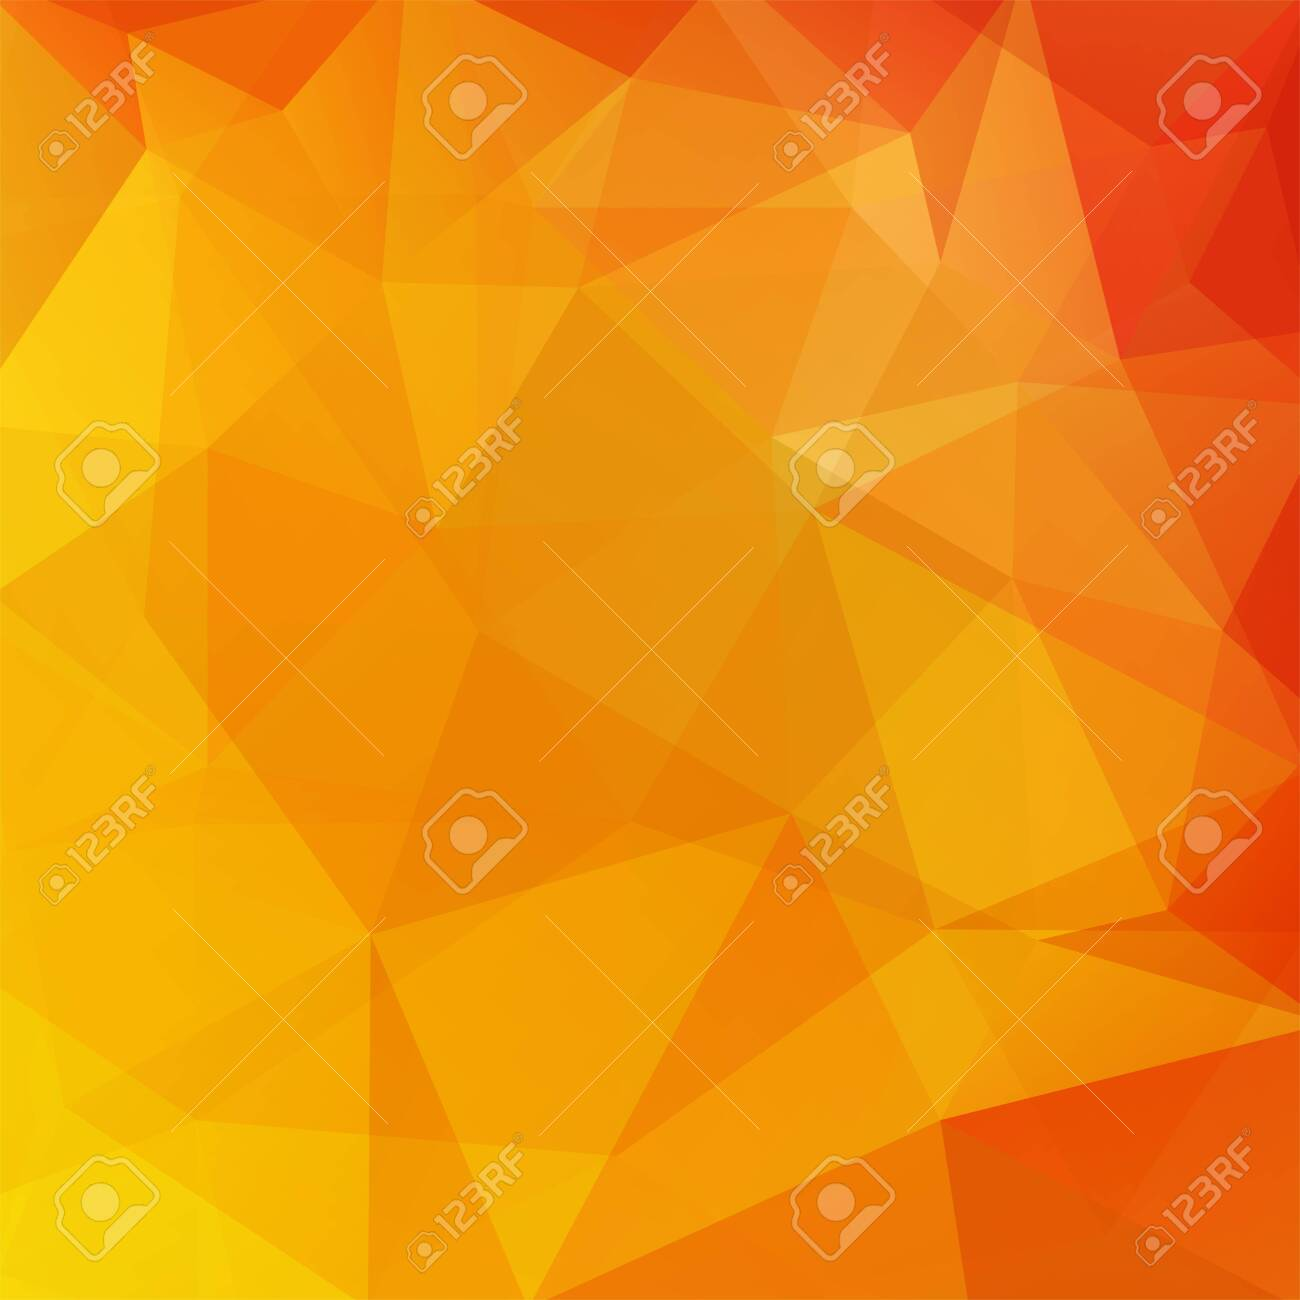 Abstract background consisting of yellow, orange triangles. Geometric design for business presentations or web template banner flyer. Vector illustration - 121391253